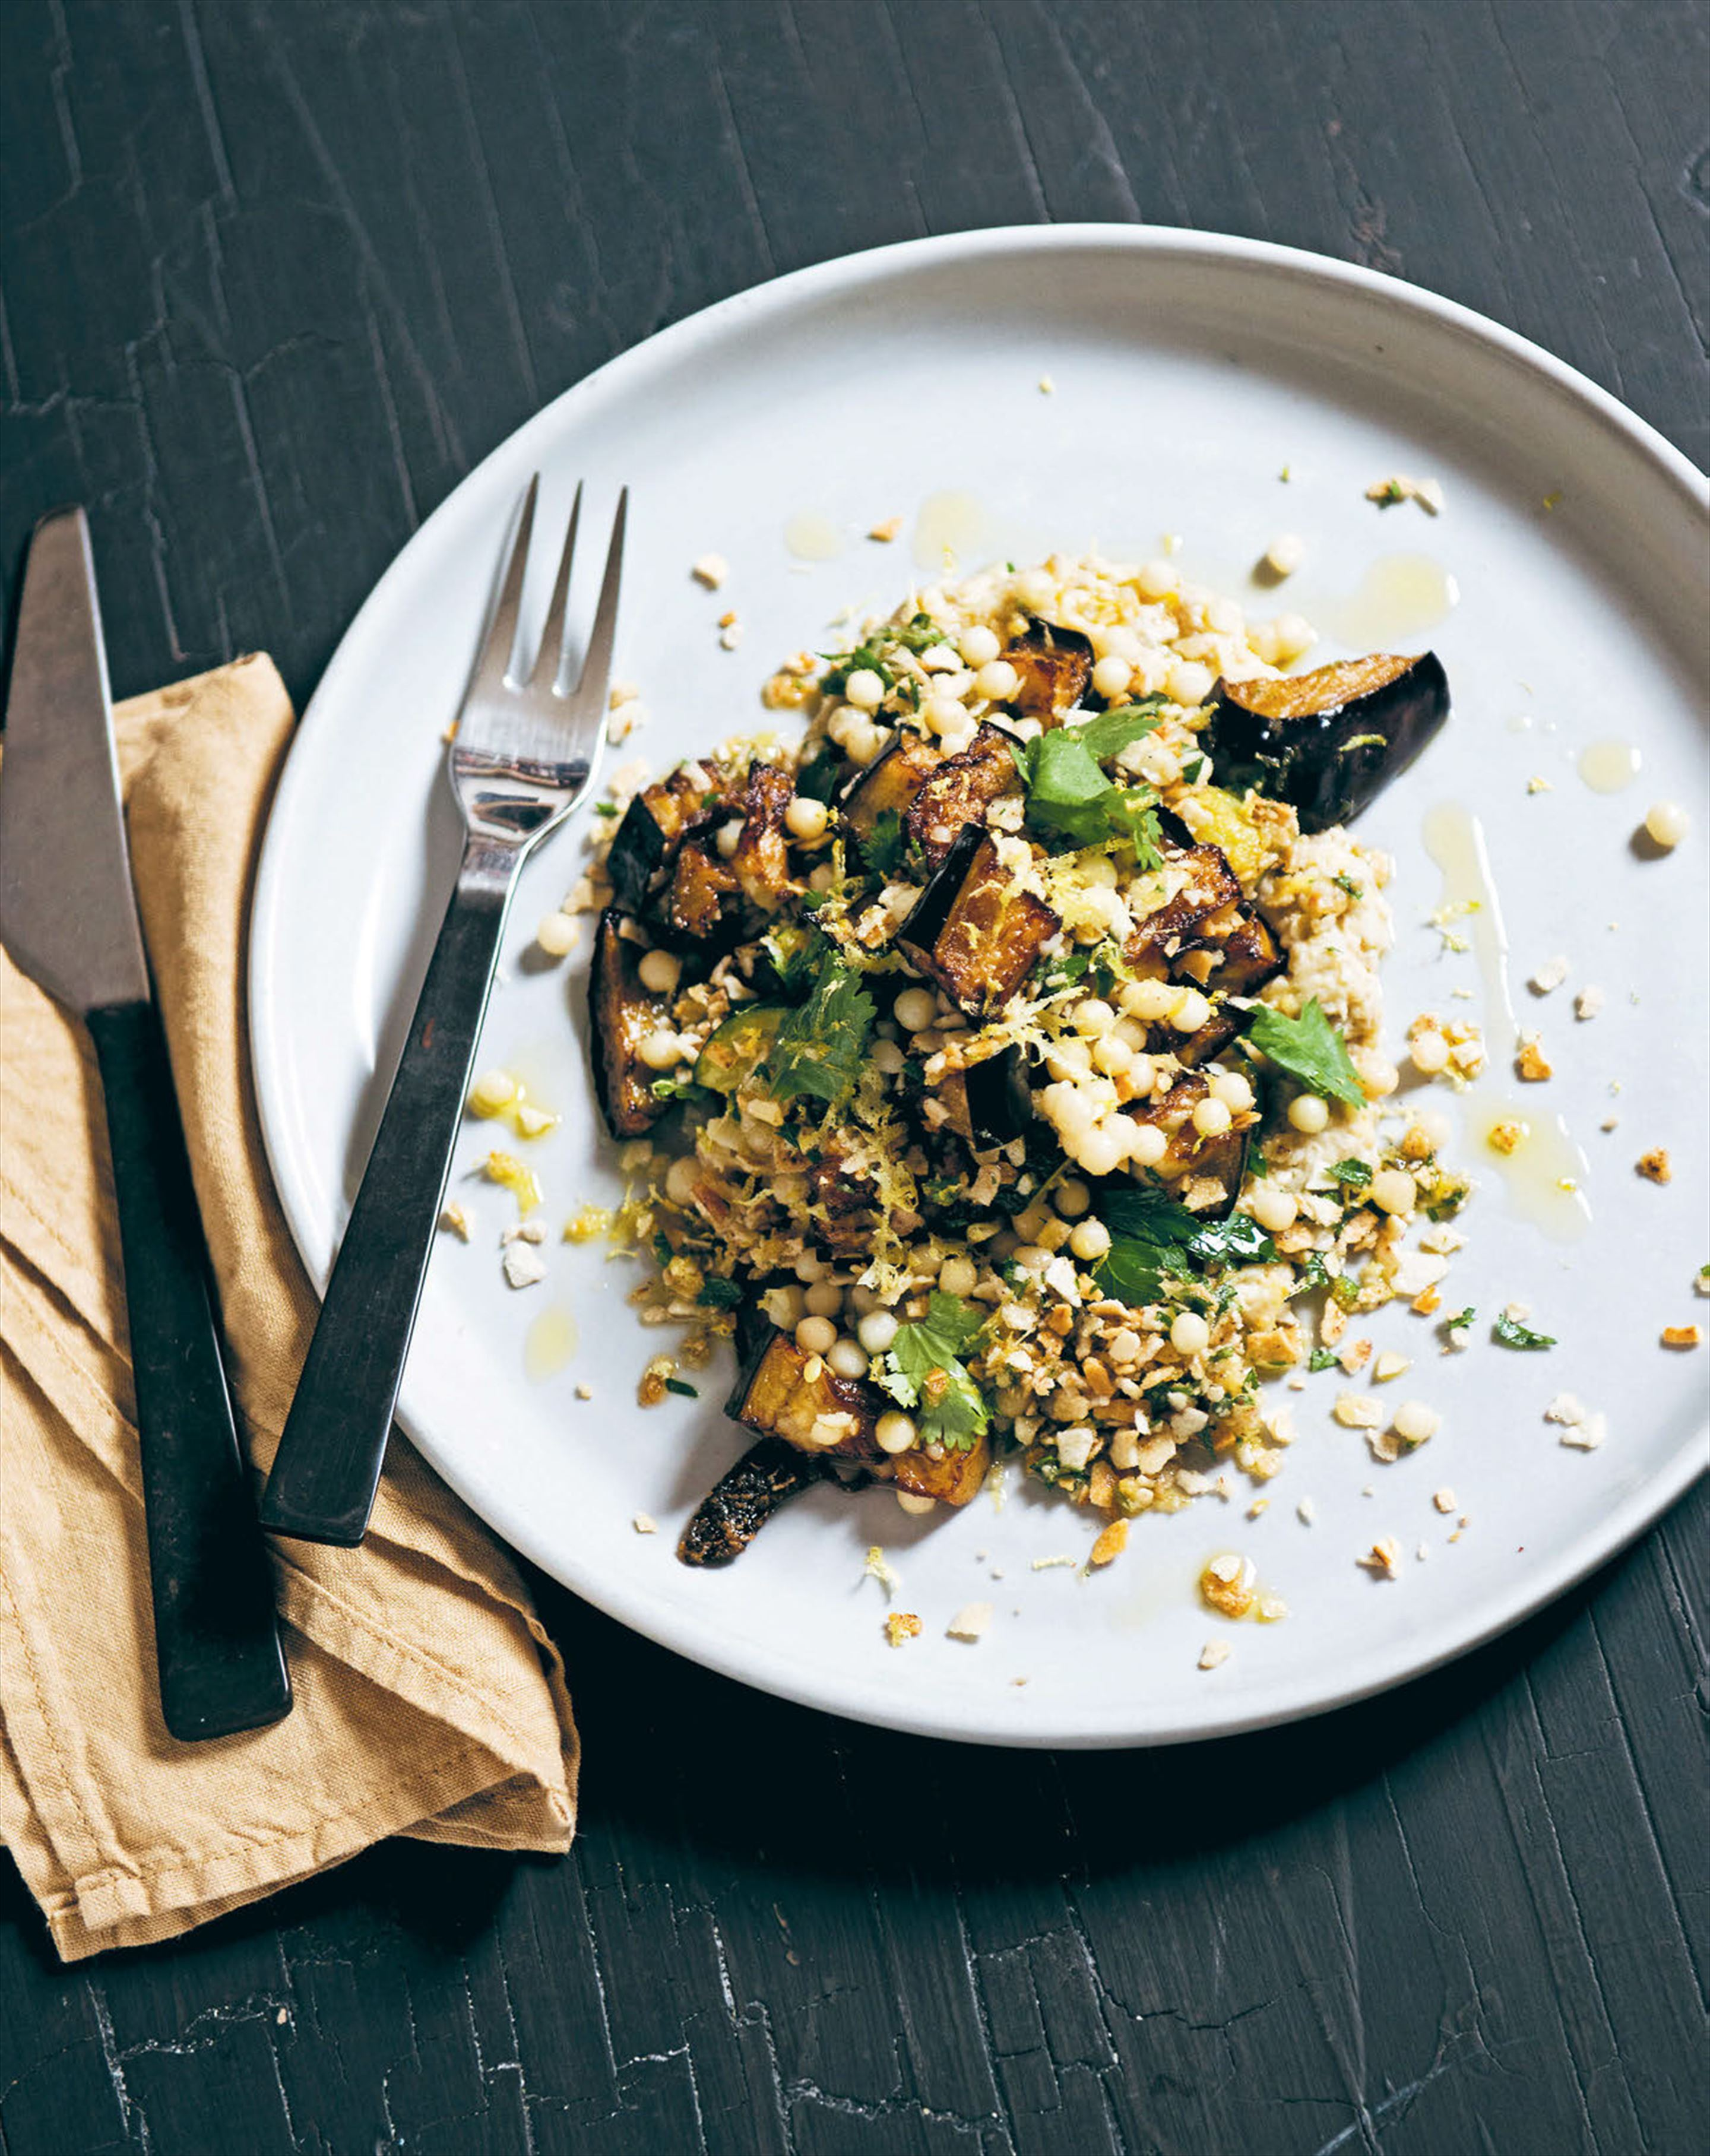 Grilled zucchini with couscous, smoked eggplant & pangritata